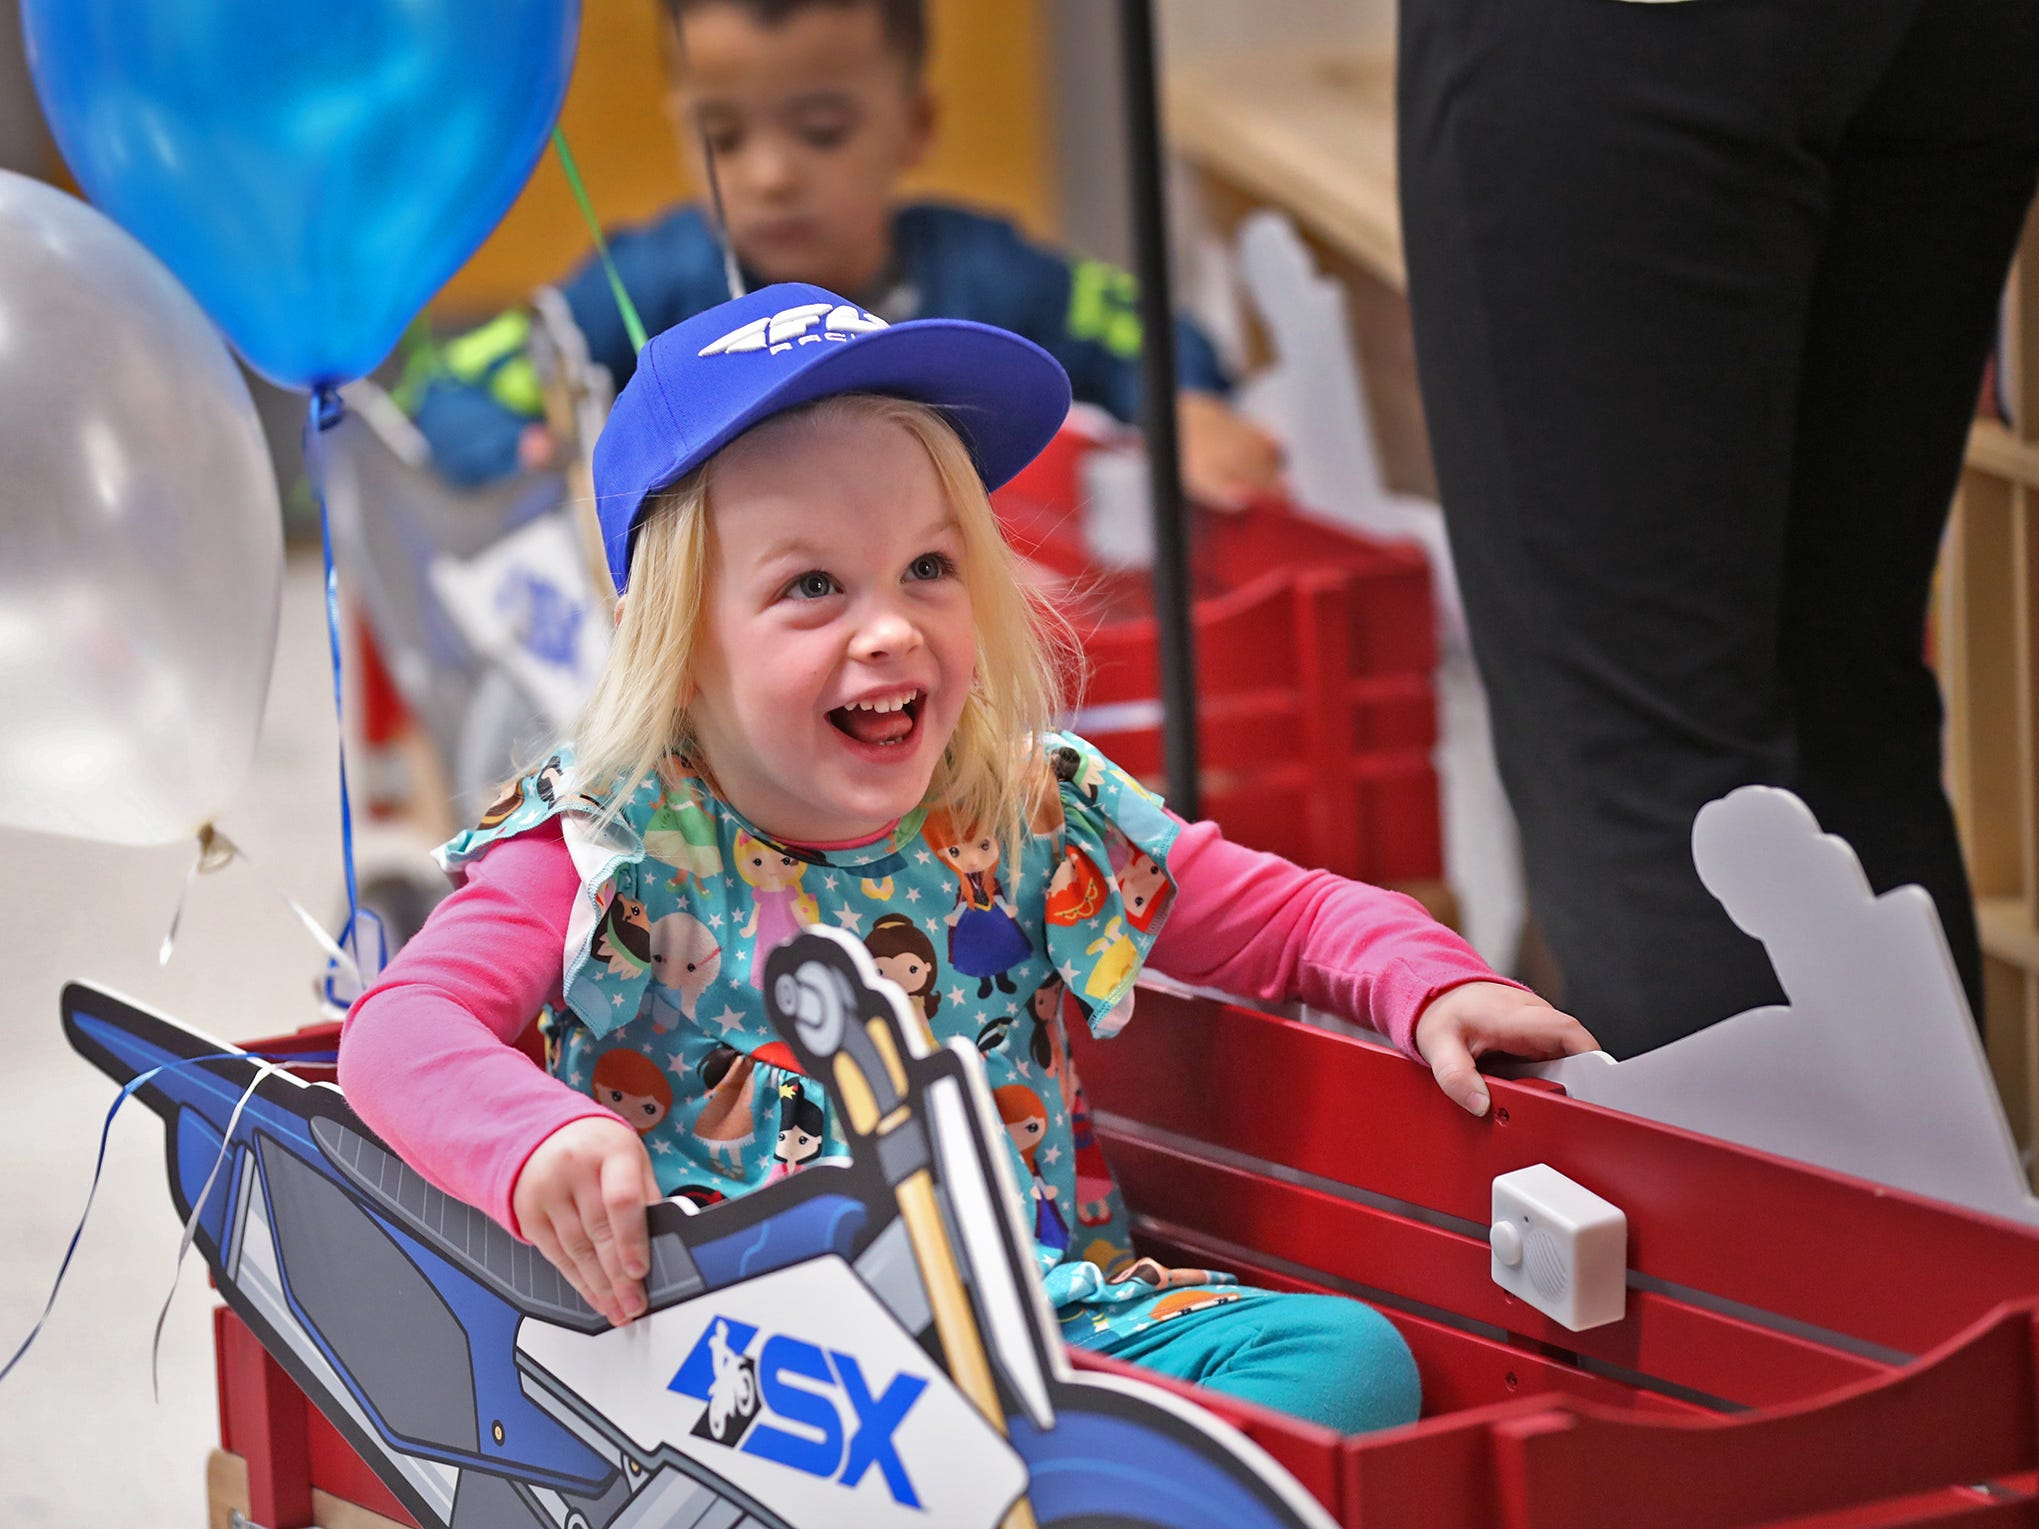 Nola Coleman laughs while getting a wagon ride from Supercross racer Mike Alessi visiting with kids at Day Early Learning Center, Thursday, March 14, 2019.  Alessi provided Supercross rider jerseys and hats for the kids and gave wagon rides, on a break before the upcoming Supercross race.